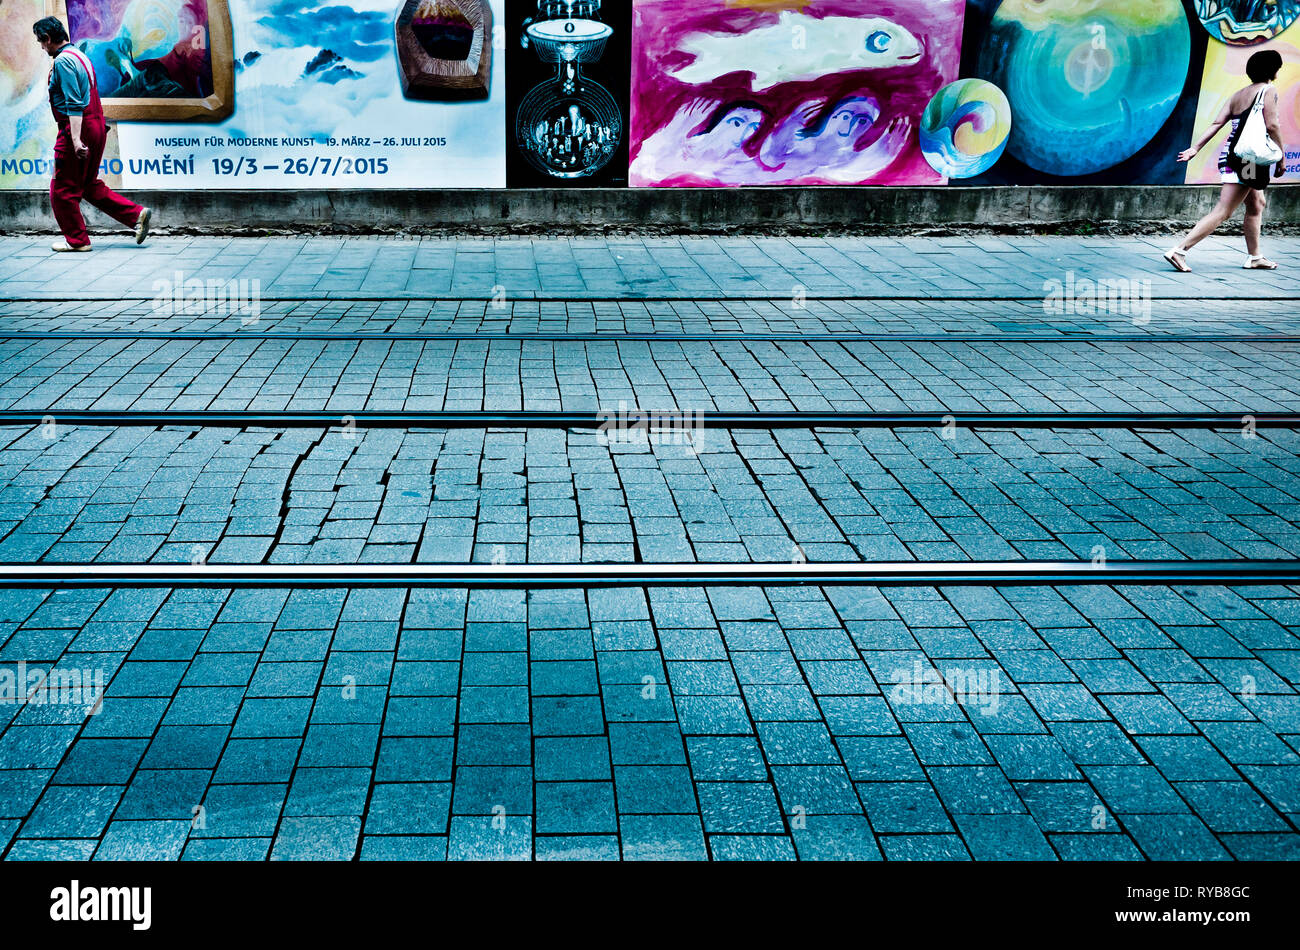 man and woman walking in opposite directions - Stock Image